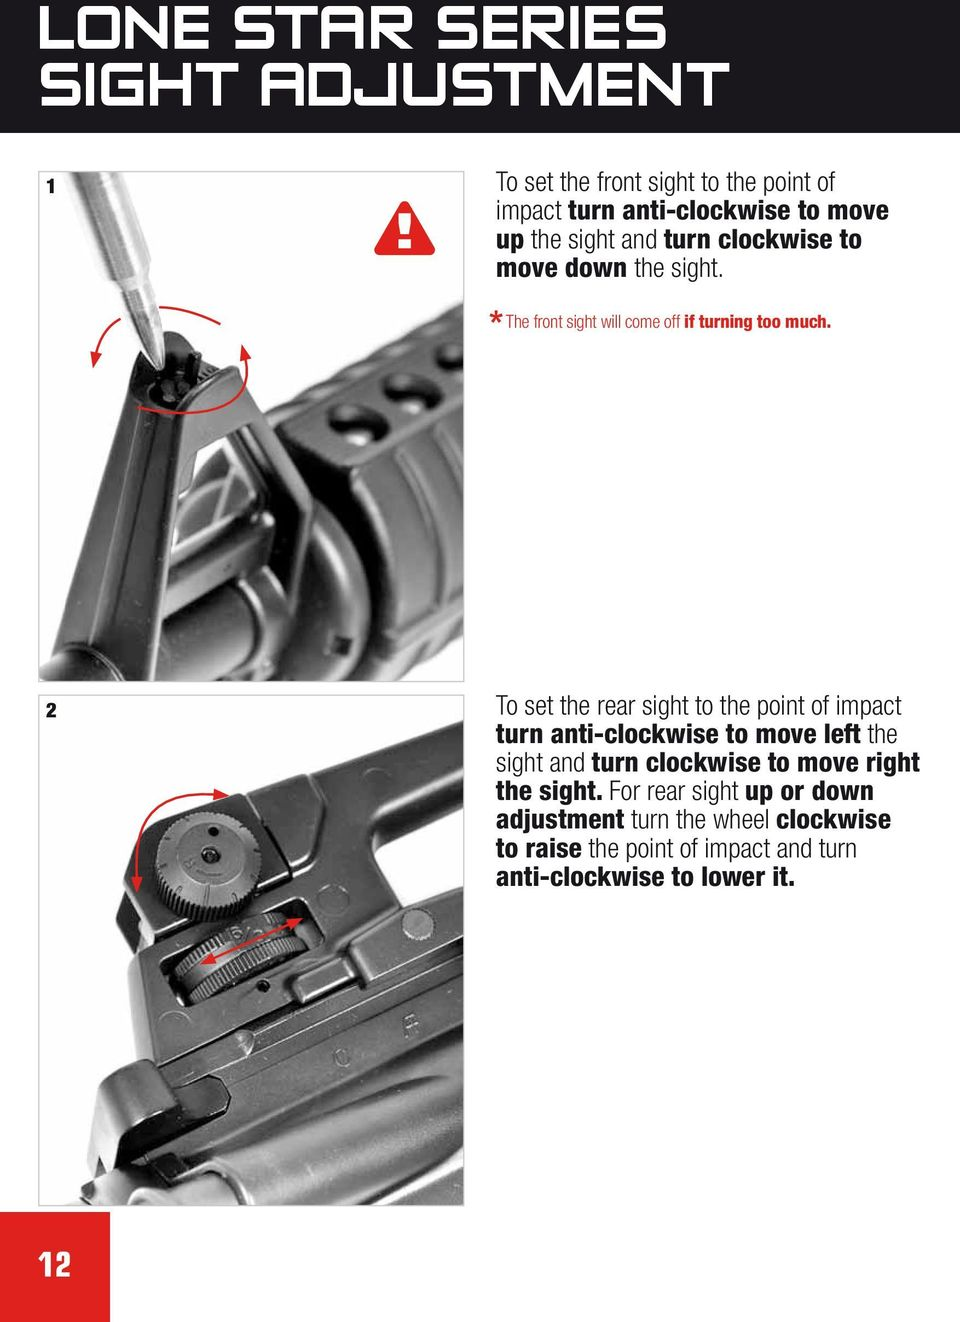 2 To set the rear sight to the point of impact turn anti-clockwise to move left the sight and turn clockwise to move